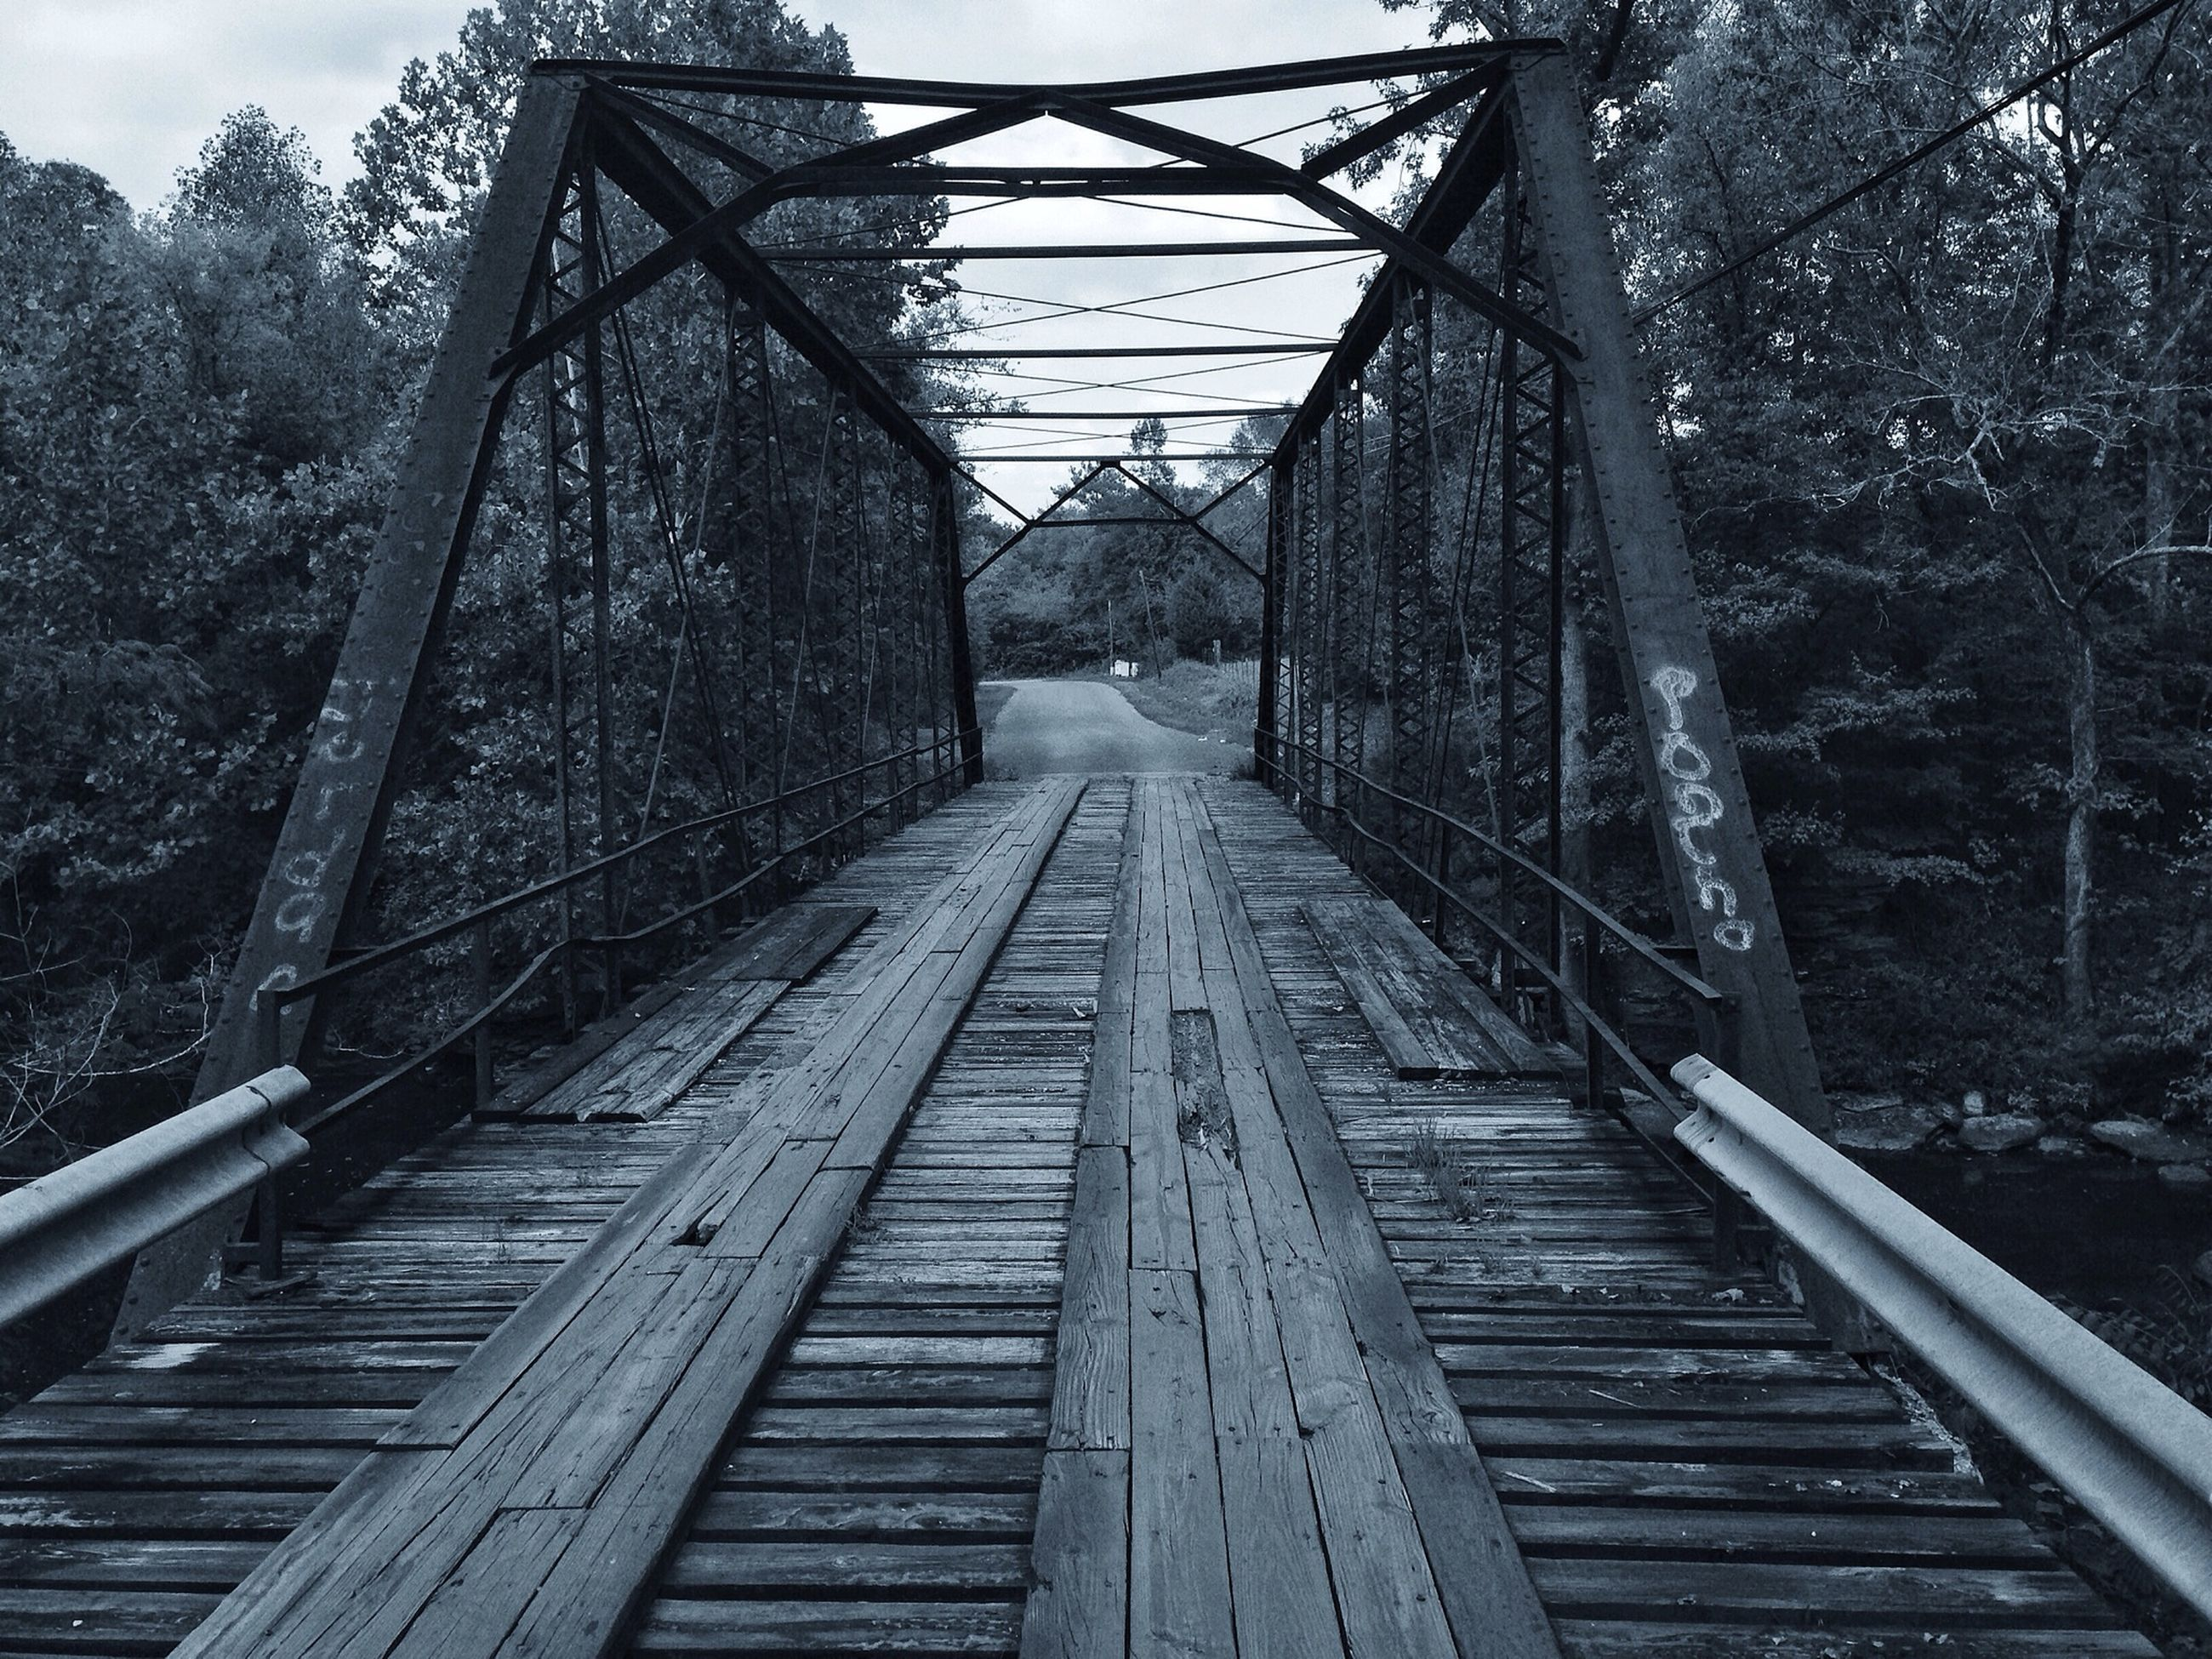 the way forward, tree, connection, diminishing perspective, railroad track, vanishing point, transportation, built structure, bridge - man made structure, metal, rail transportation, architecture, footbridge, sky, railing, forest, long, day, no people, outdoors